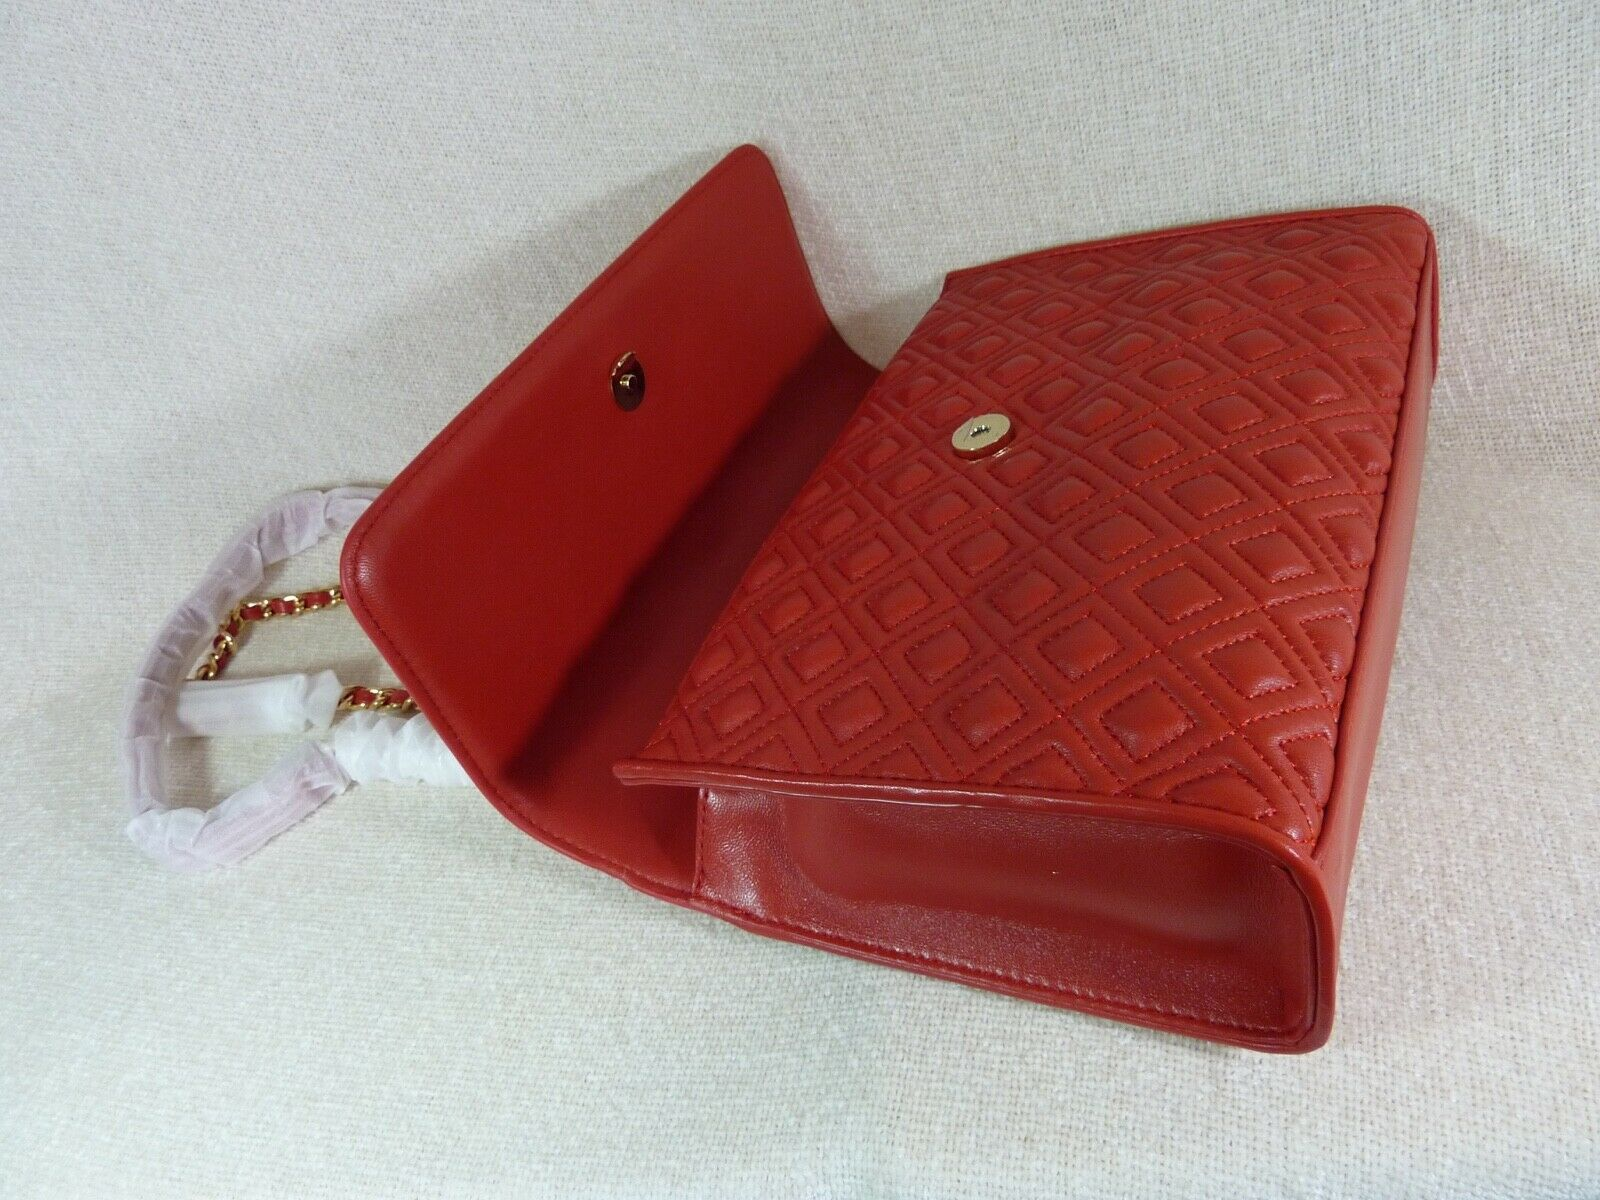 NWT Tory Burch Red Volcano Leather Fleming Convertible Bag